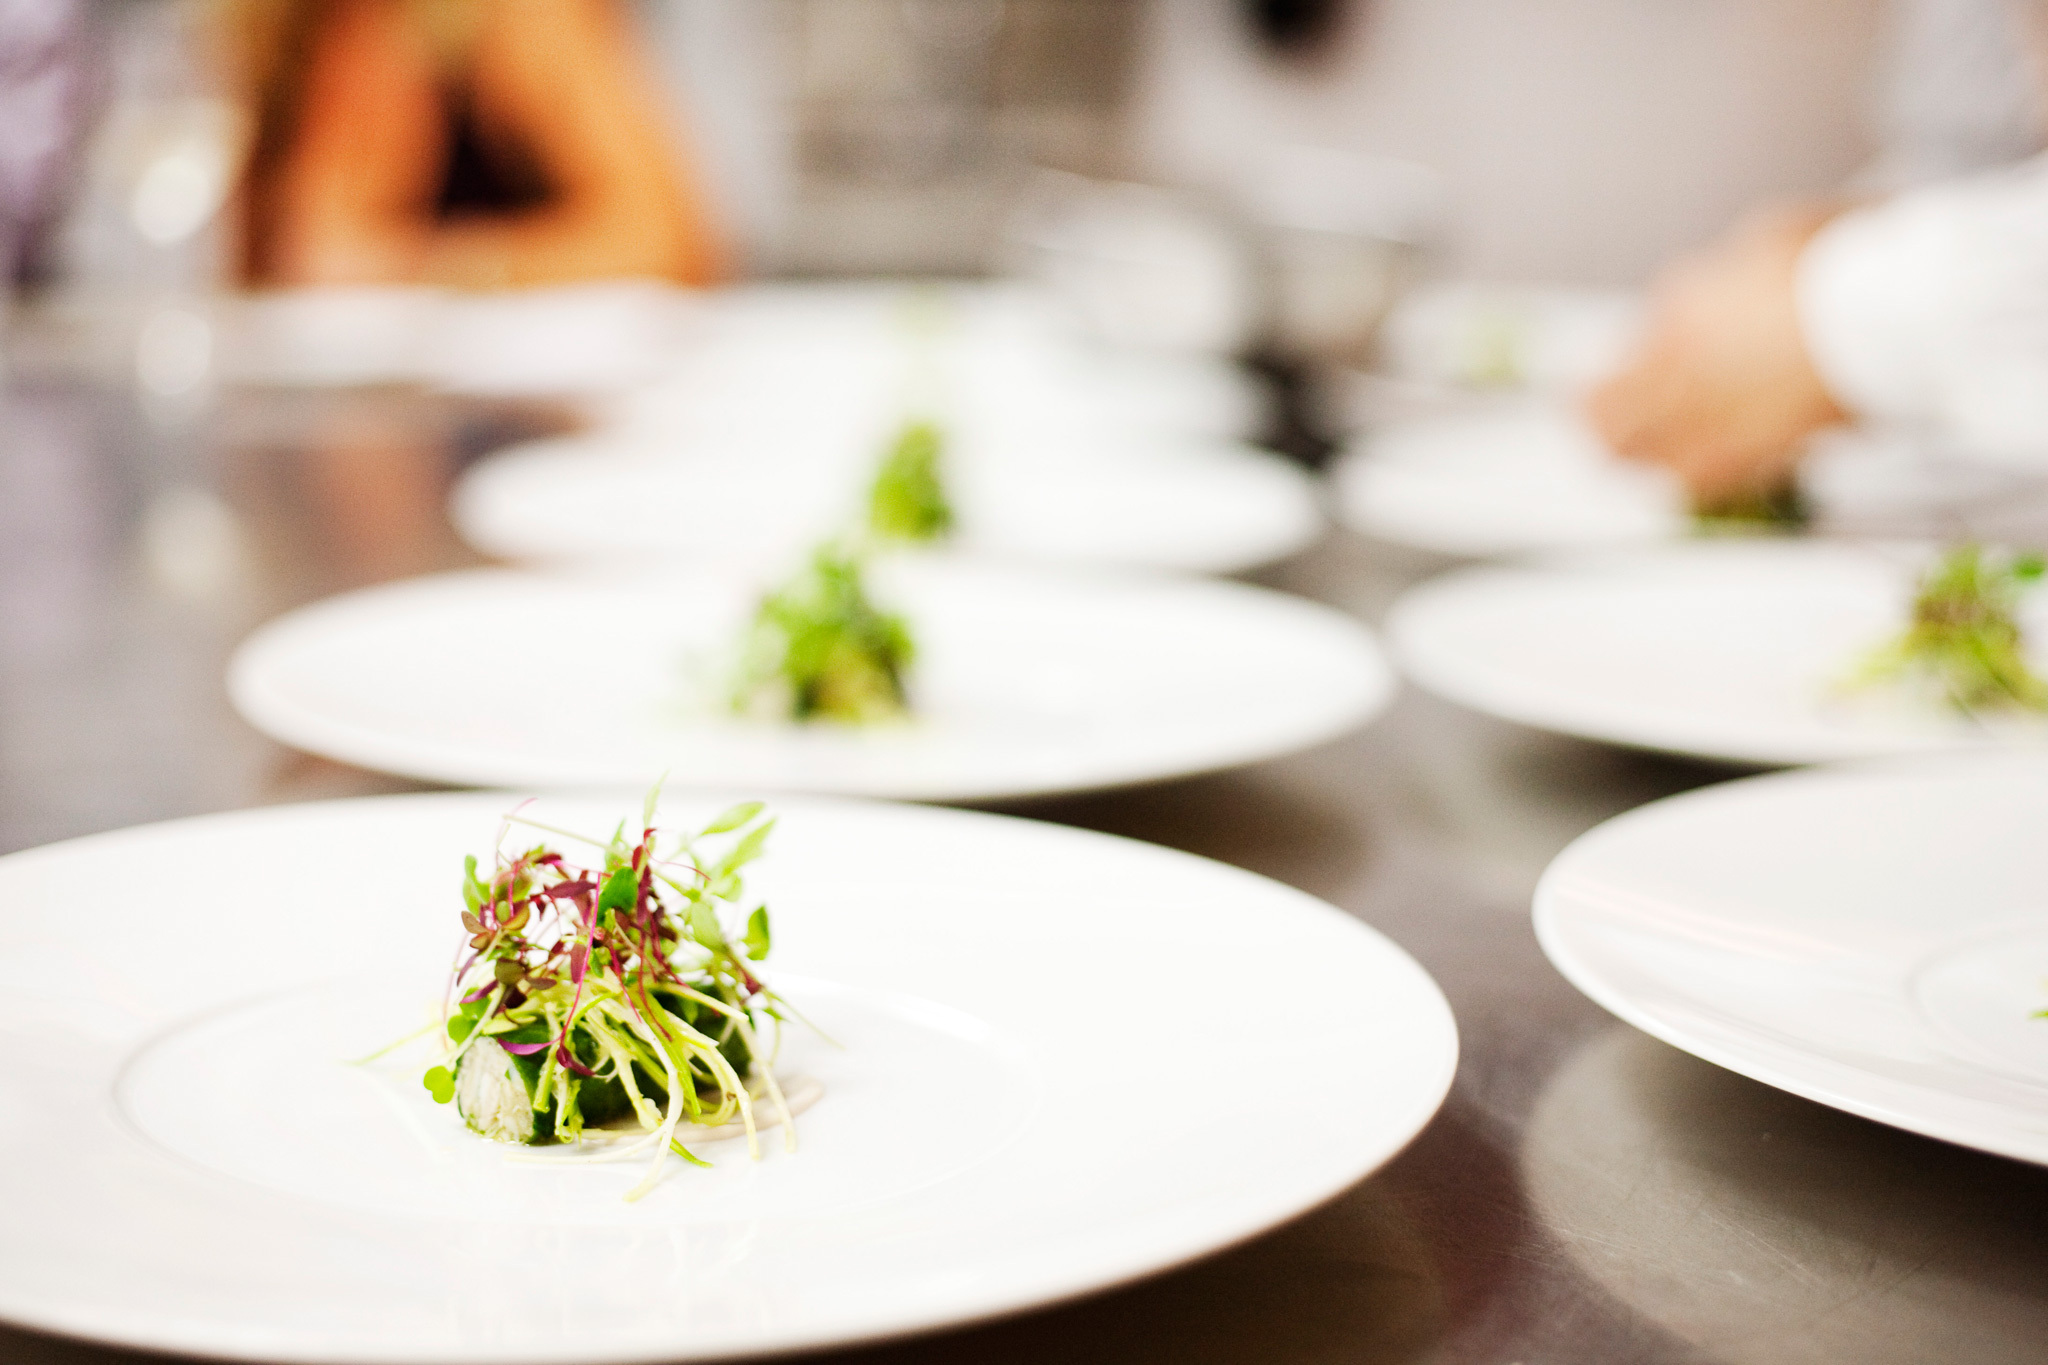 The most anticipated NYC restaurant openings of 2015